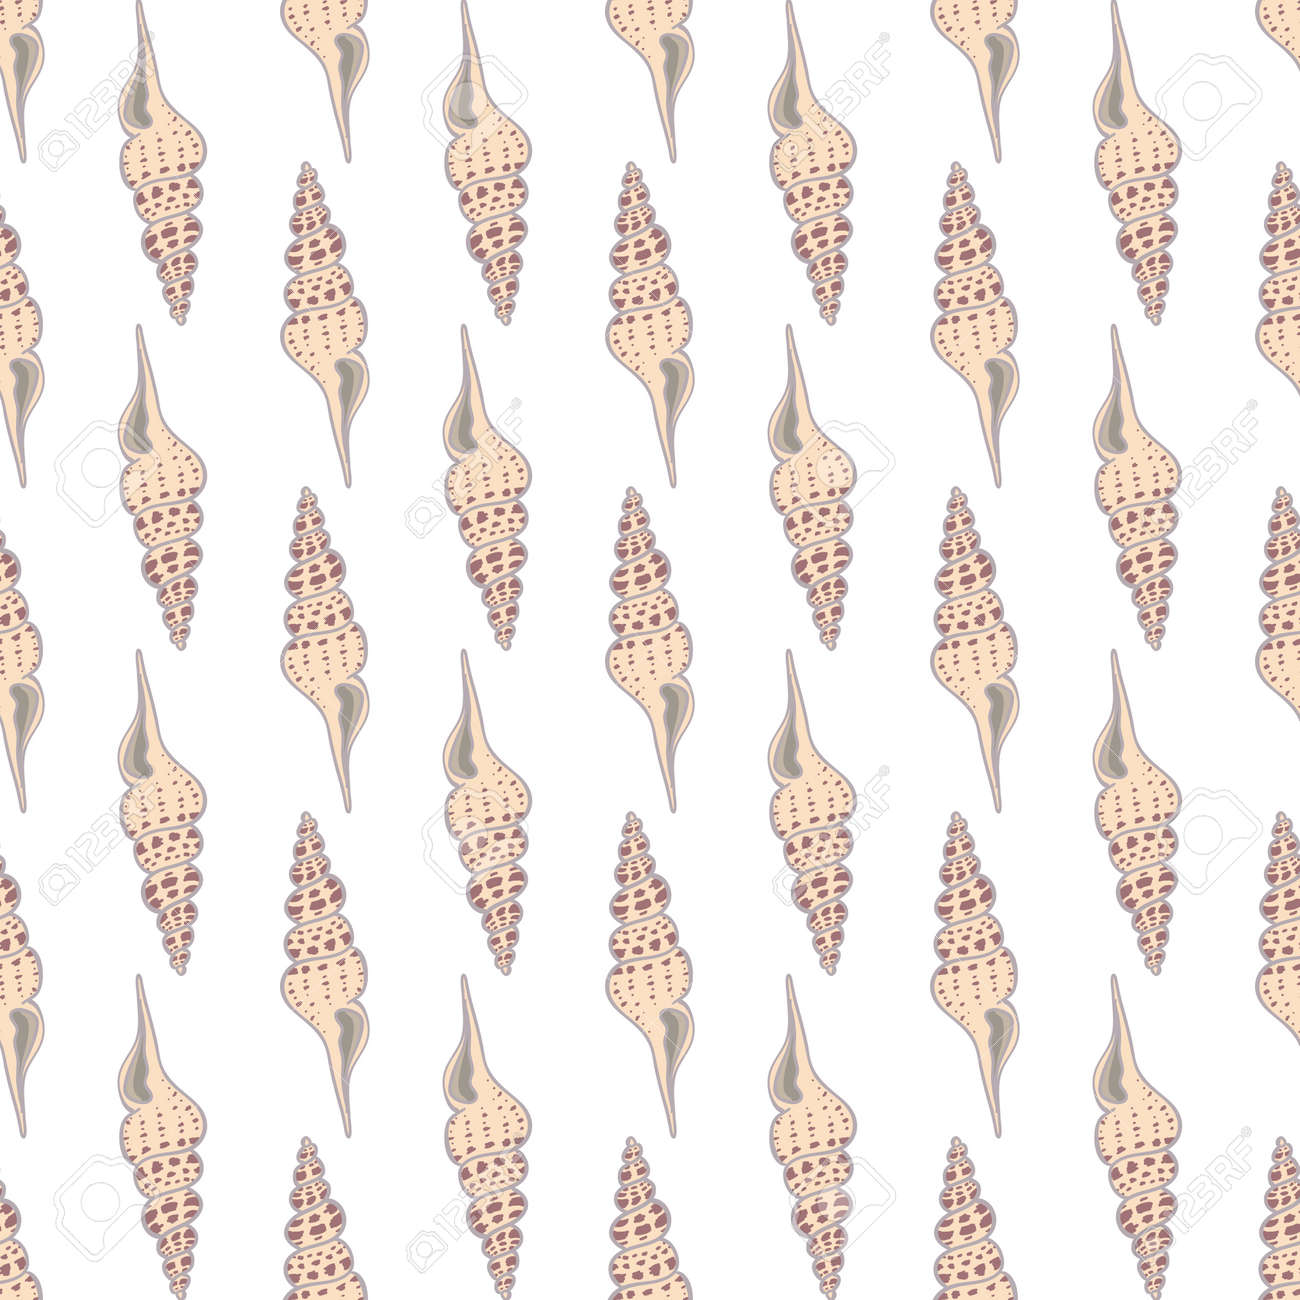 Seamless vintage pattern with seashells. Sea background. Vector illustration in the flat style. Perfect for greeting cards, invitations, wrapping paper, textiles, wedding design. - 168291123